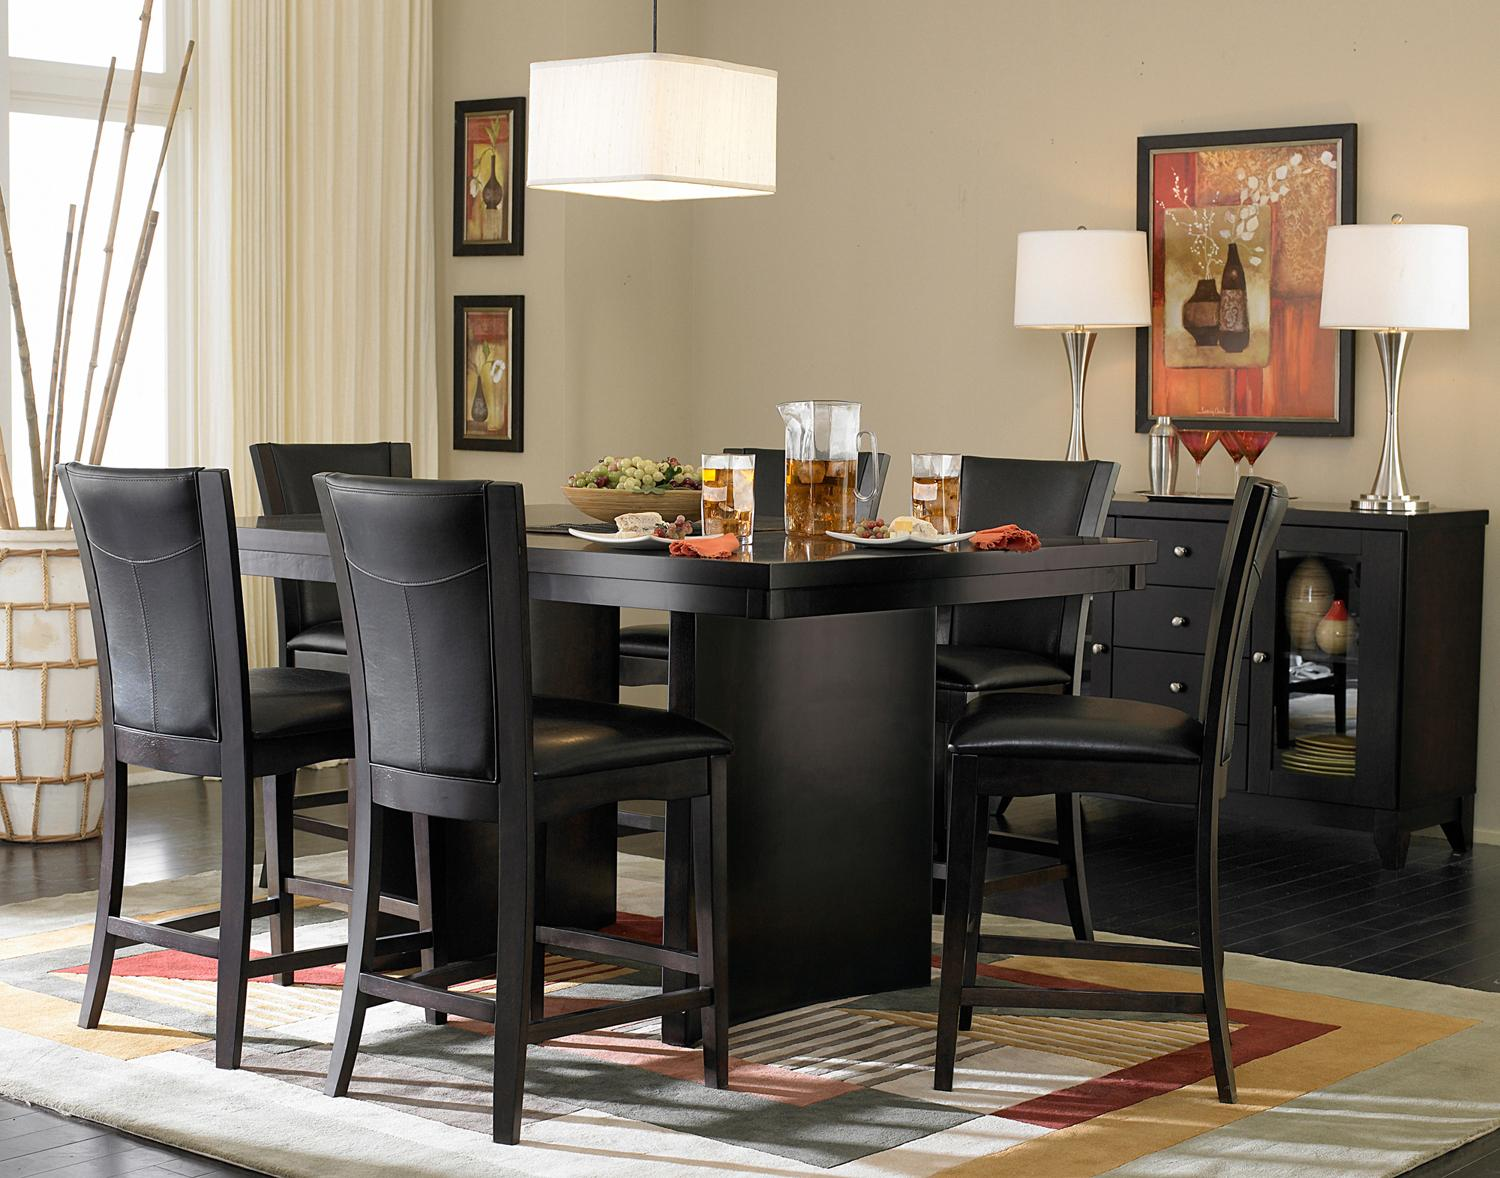 Homelegance 710 7 Piece Counter Height Glass Top Dining Set | Northeast  Factory Direct | Pub Table And Stool Set Cleveland, Eastlake, Westlake,  Mentor, ...